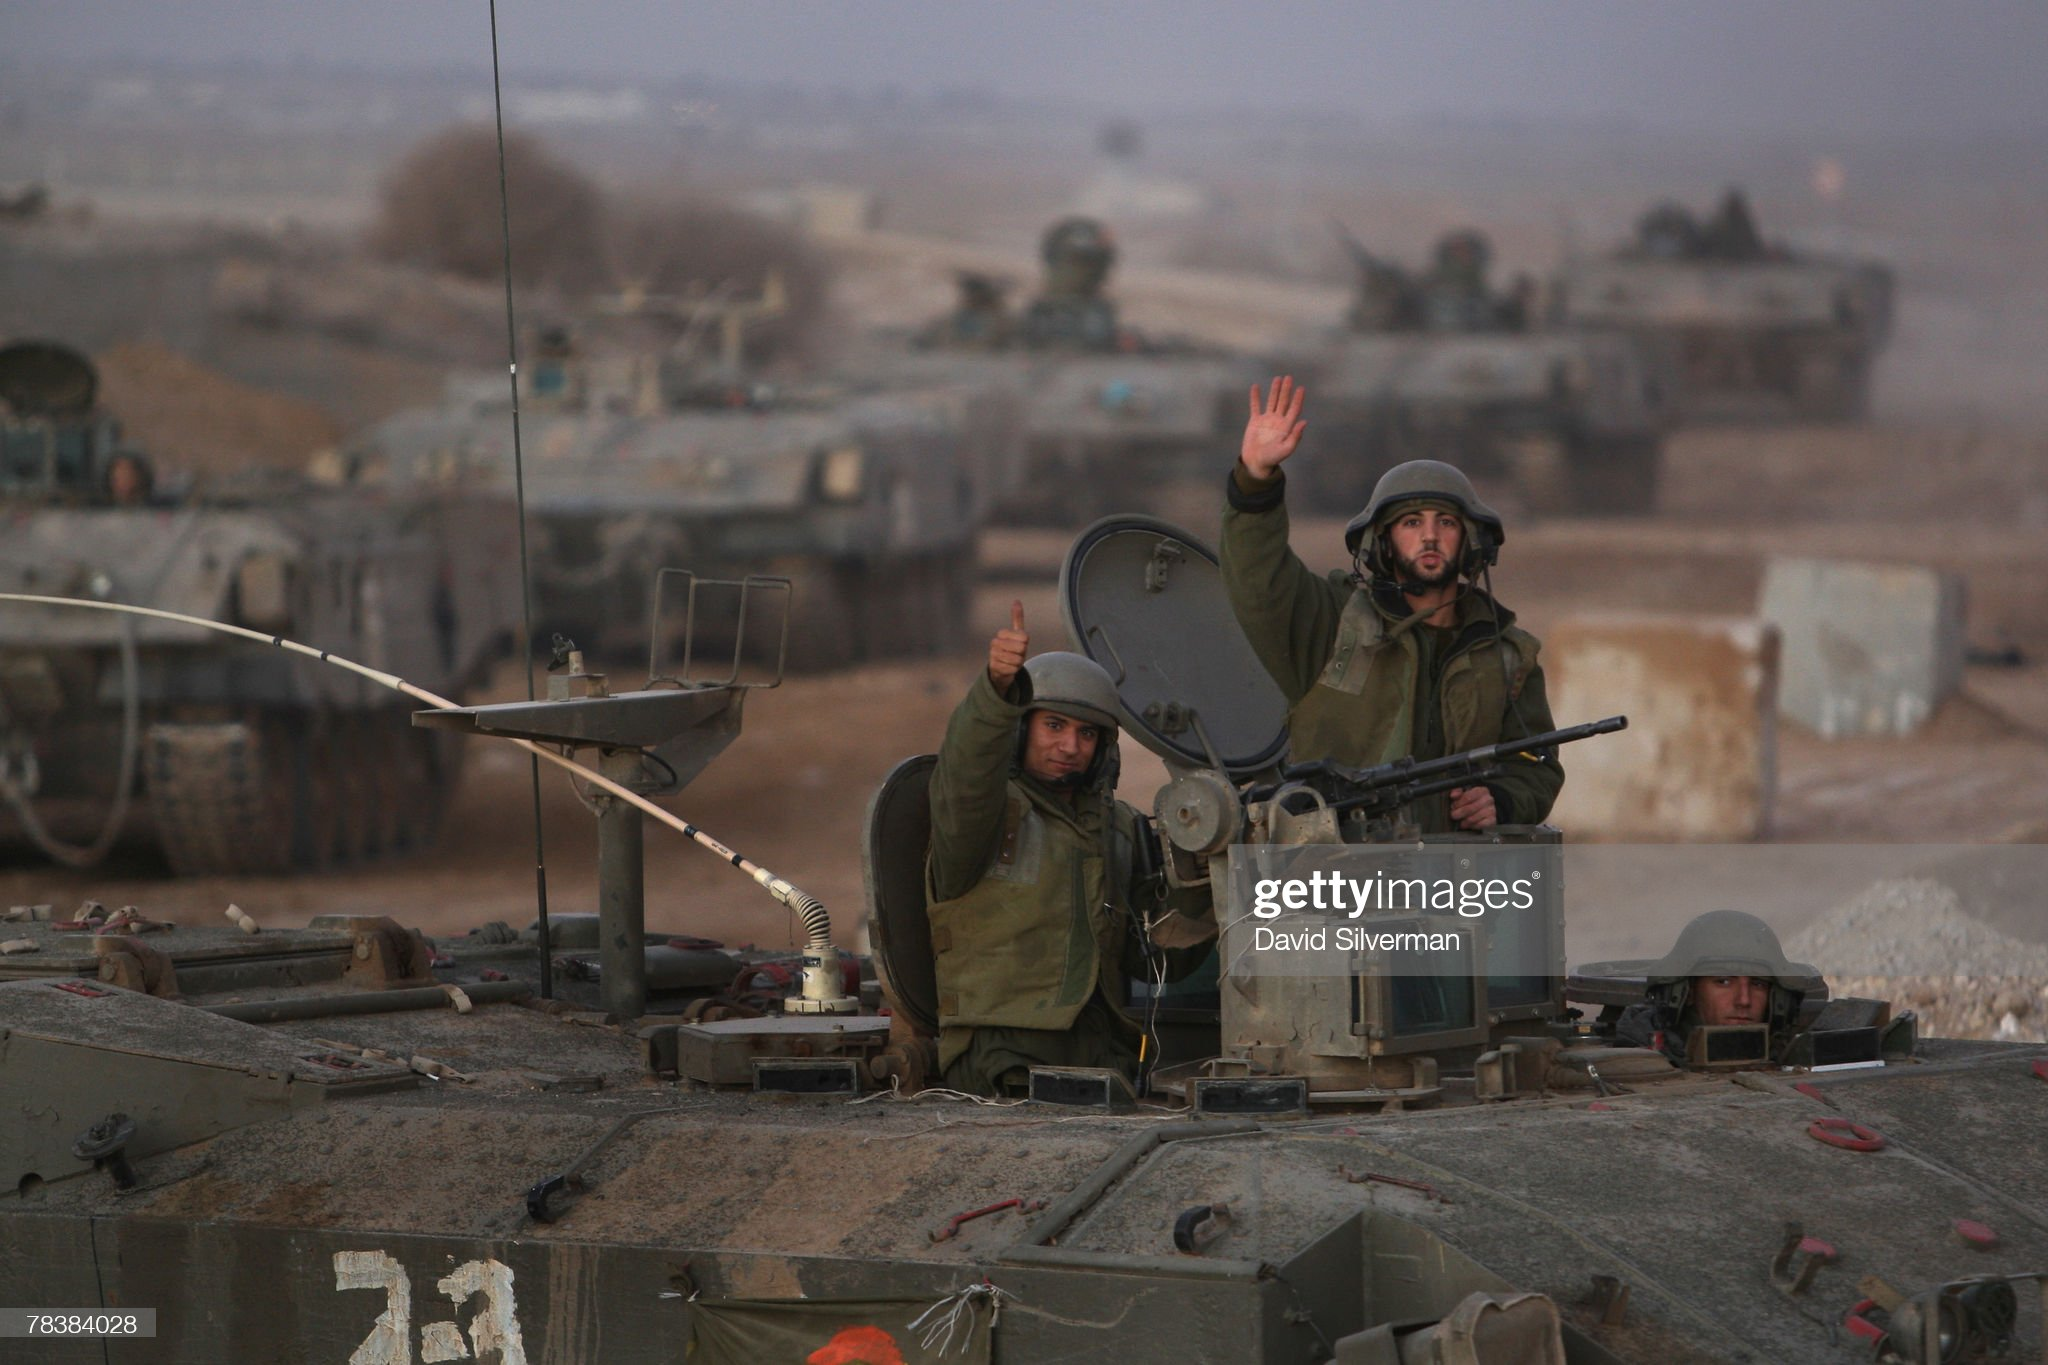 https://media.gettyimages.com/photos/israeli-soldiers-celebrate-their-safe-return-to-base-in-a-column-of-picture-id78384028?s=2048x2048